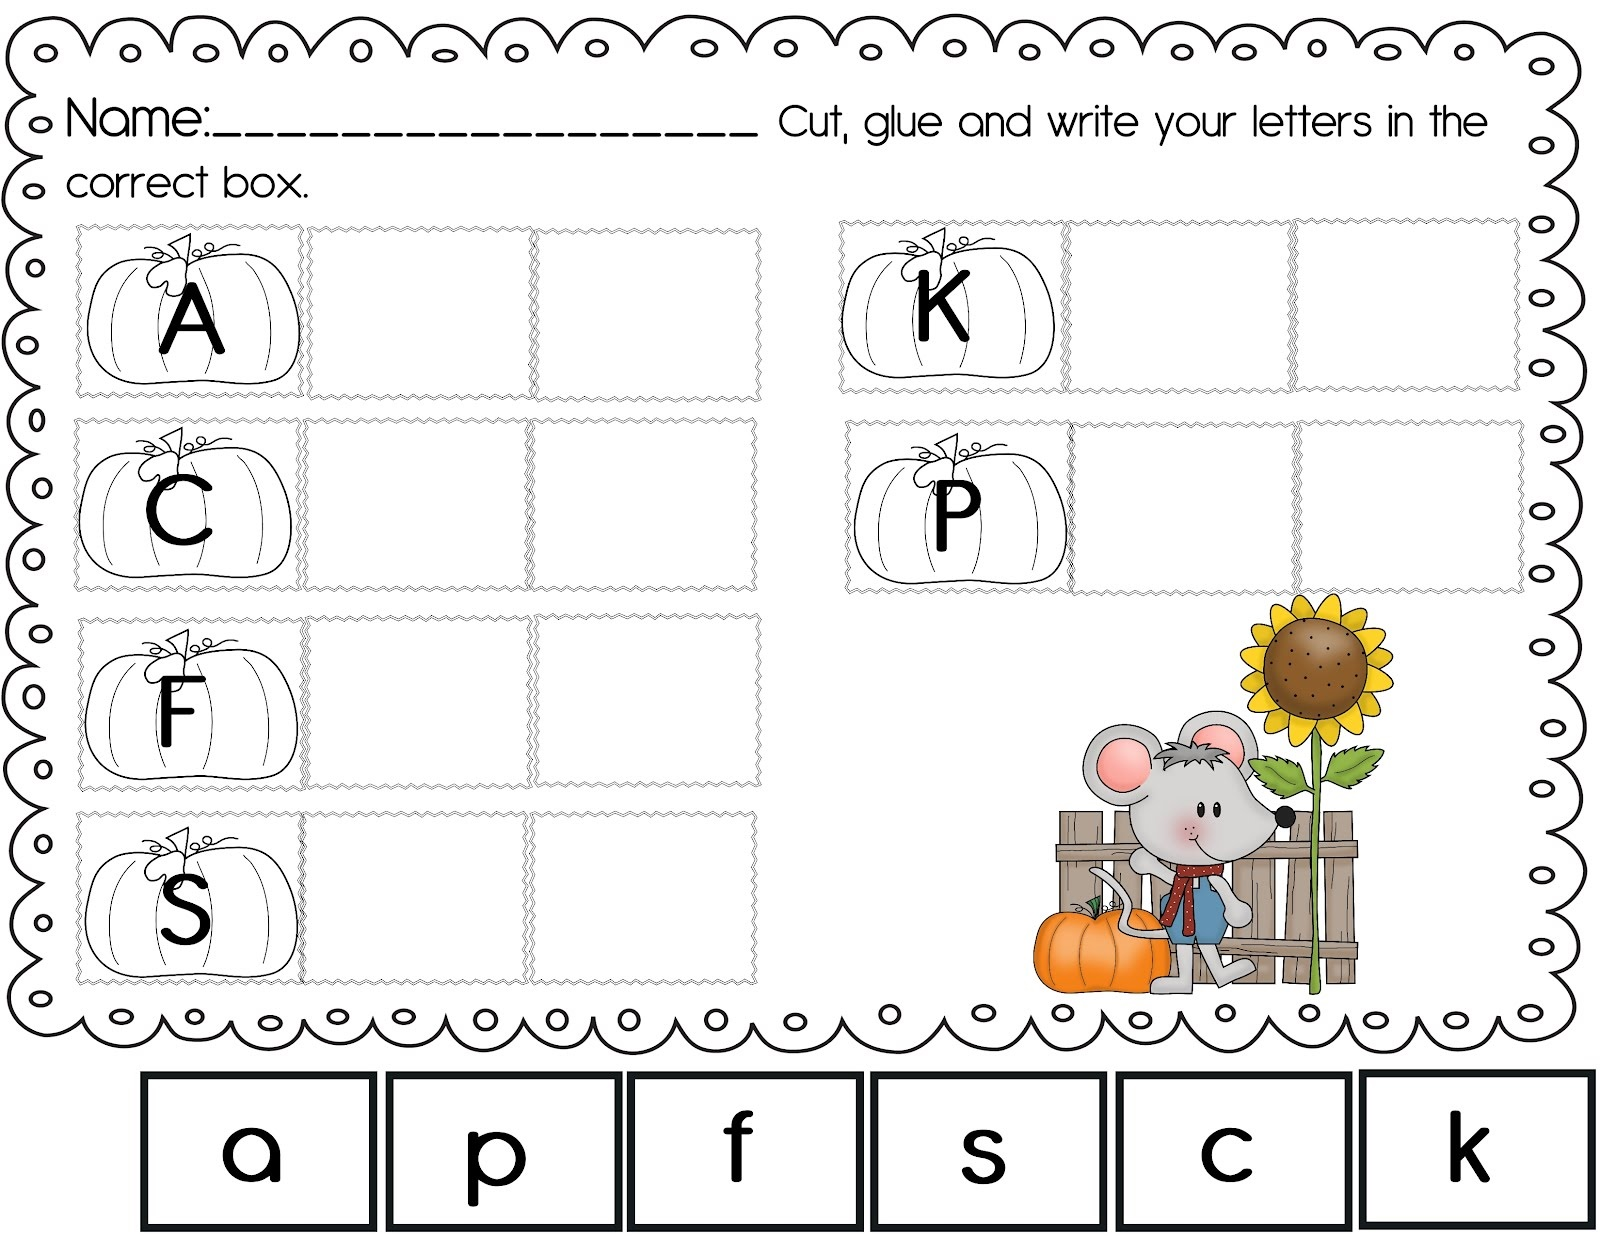 Free Abc Worksheets For Kids